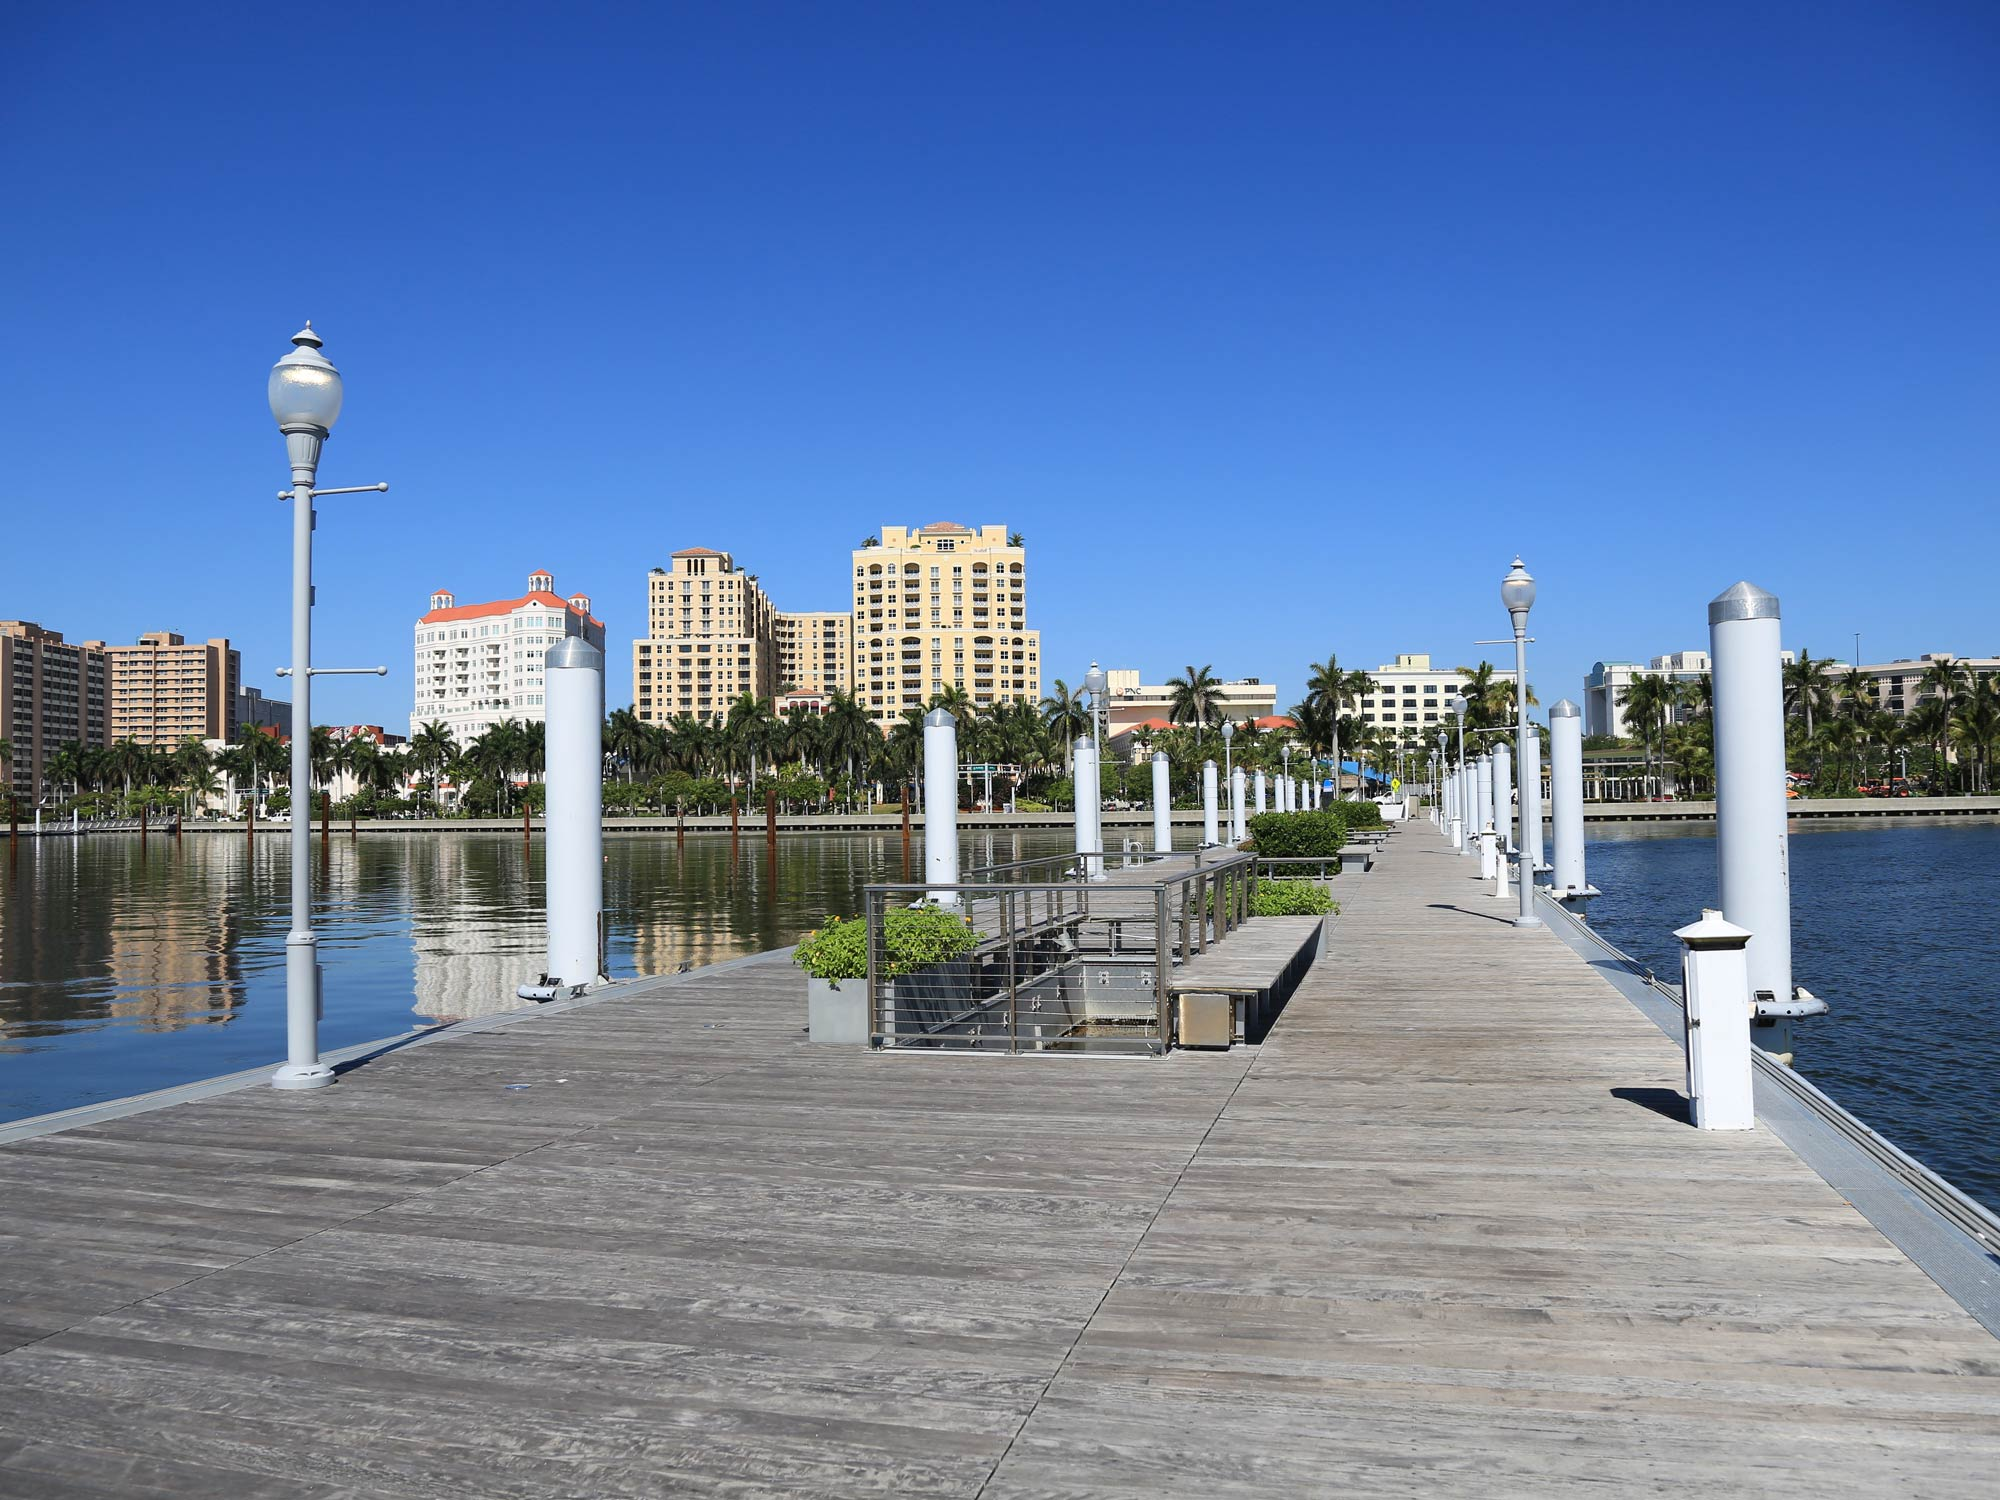 Clean and modern public docks in downtown West Palm Beach